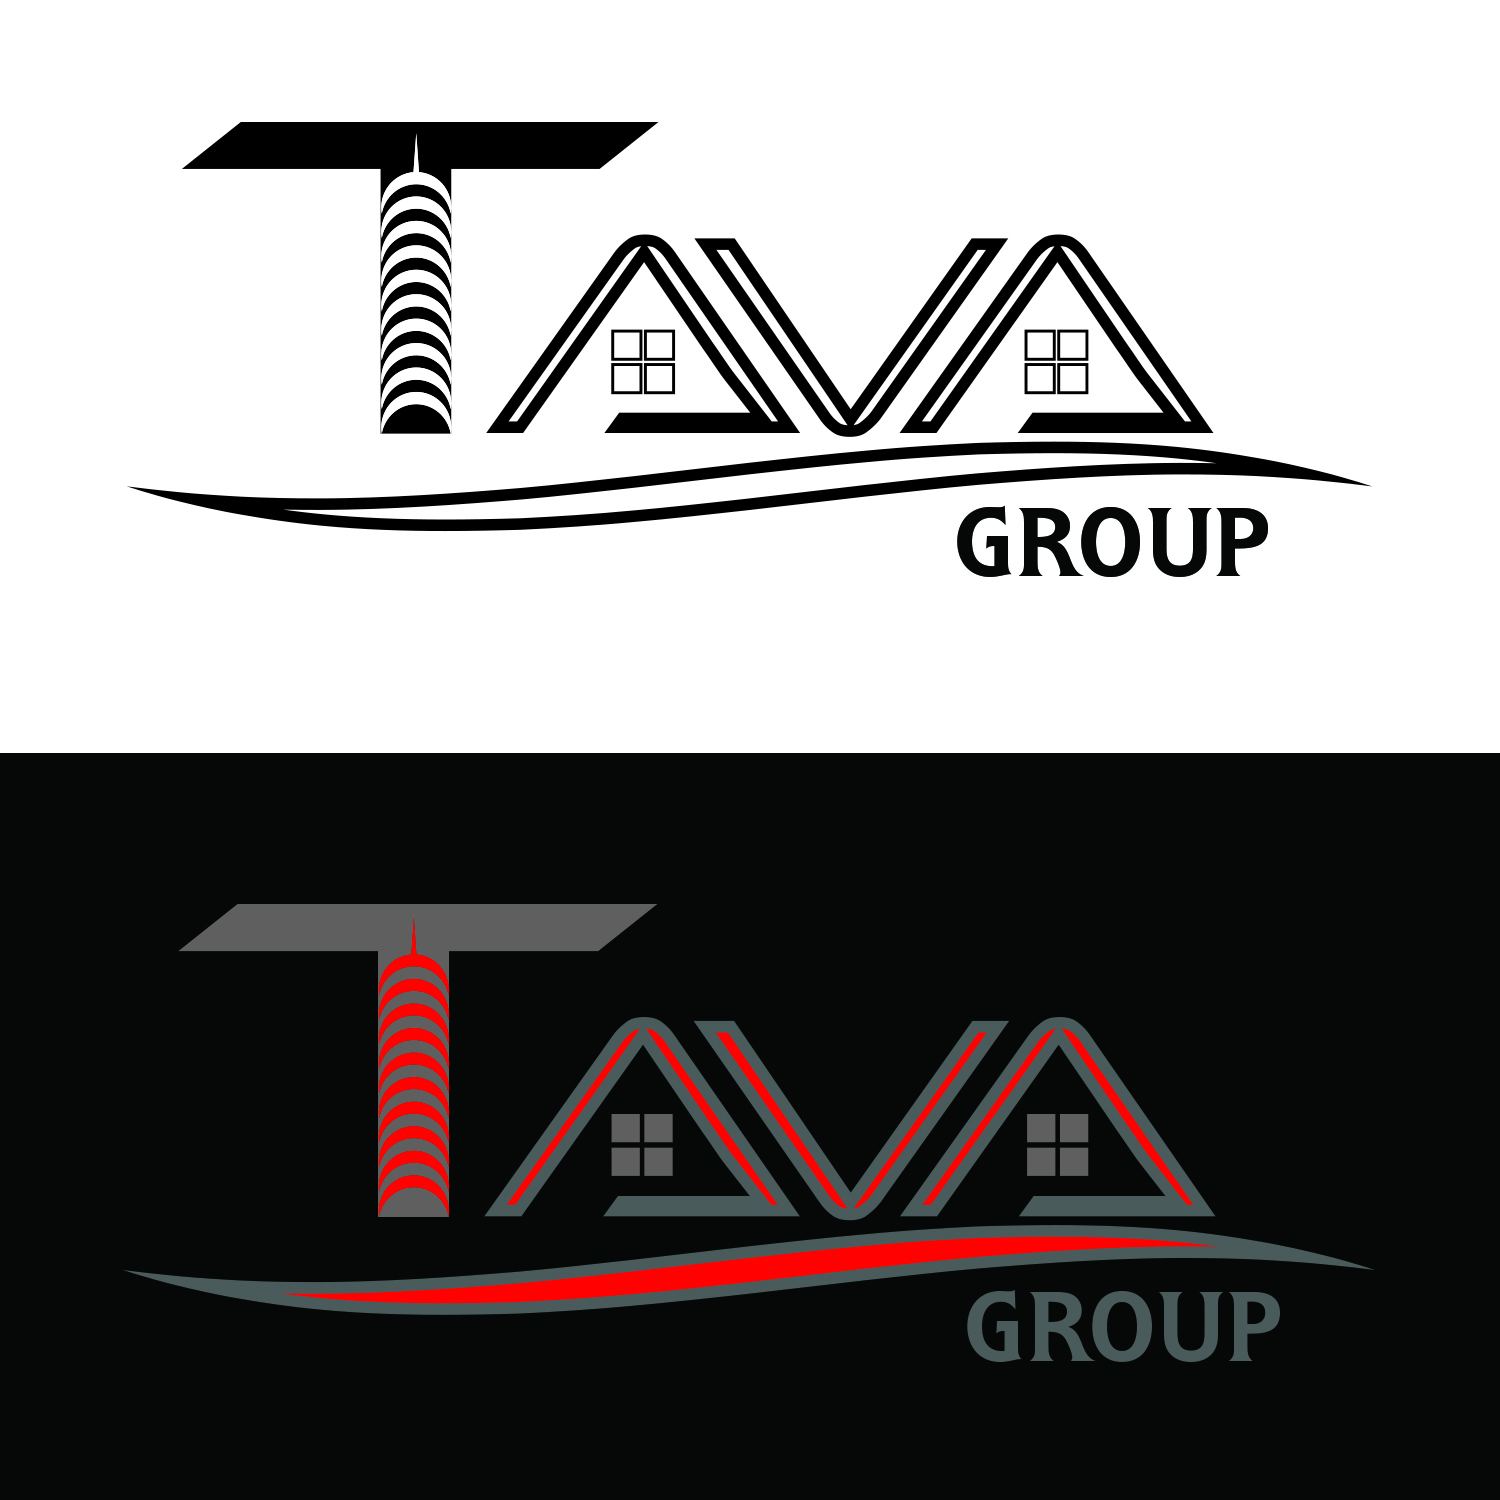 Logo Design by Umair ahmed Iqbal - Entry No. 185 in the Logo Design Contest Creative Logo Design for Tava Group.